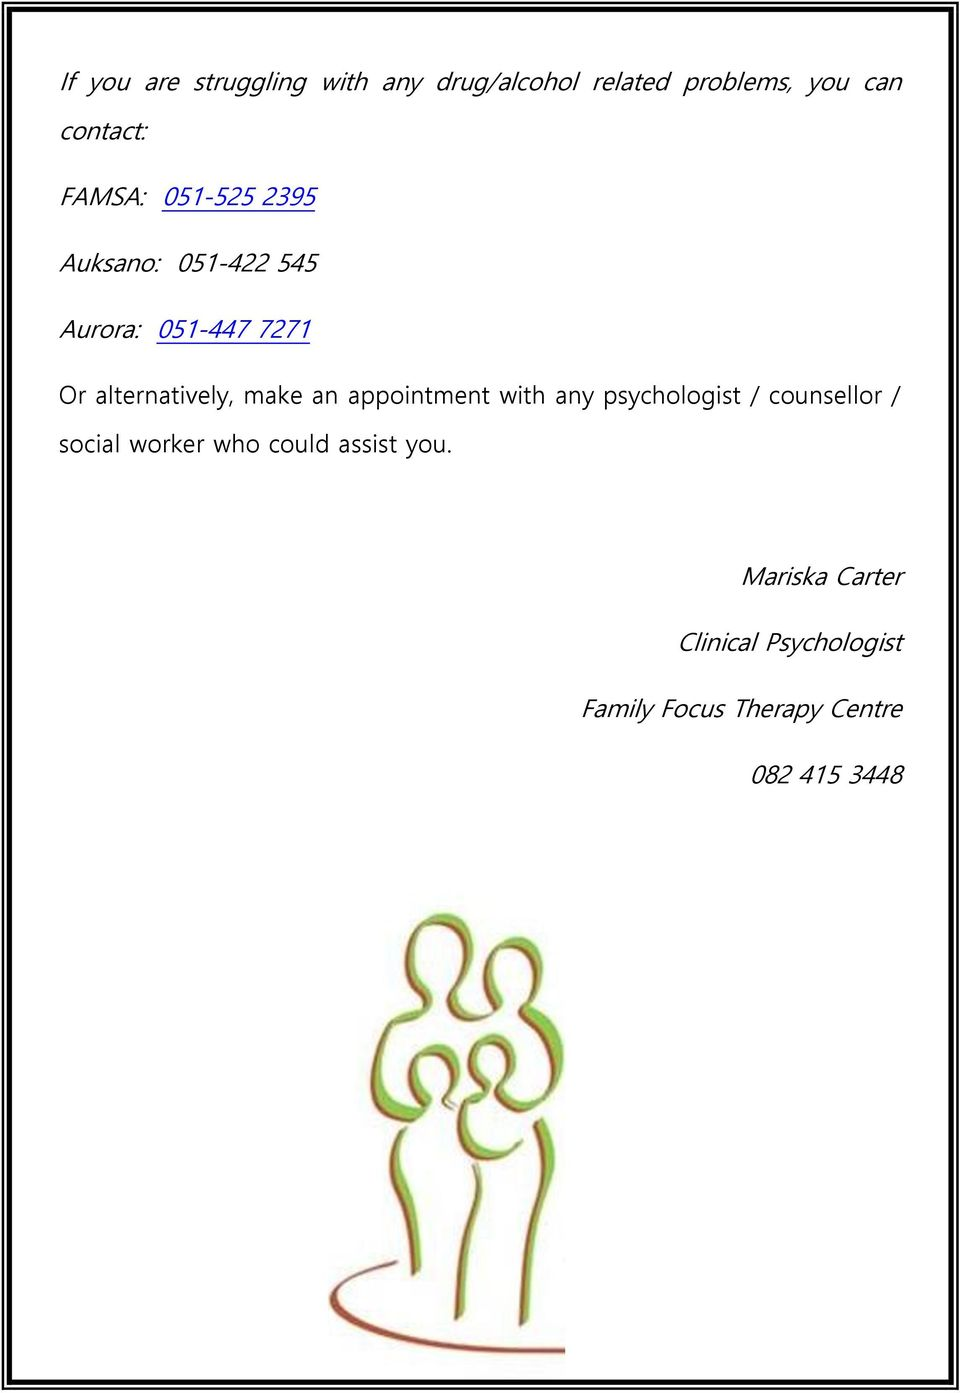 make an appointment with any psychologist / counsellor / social worker who could